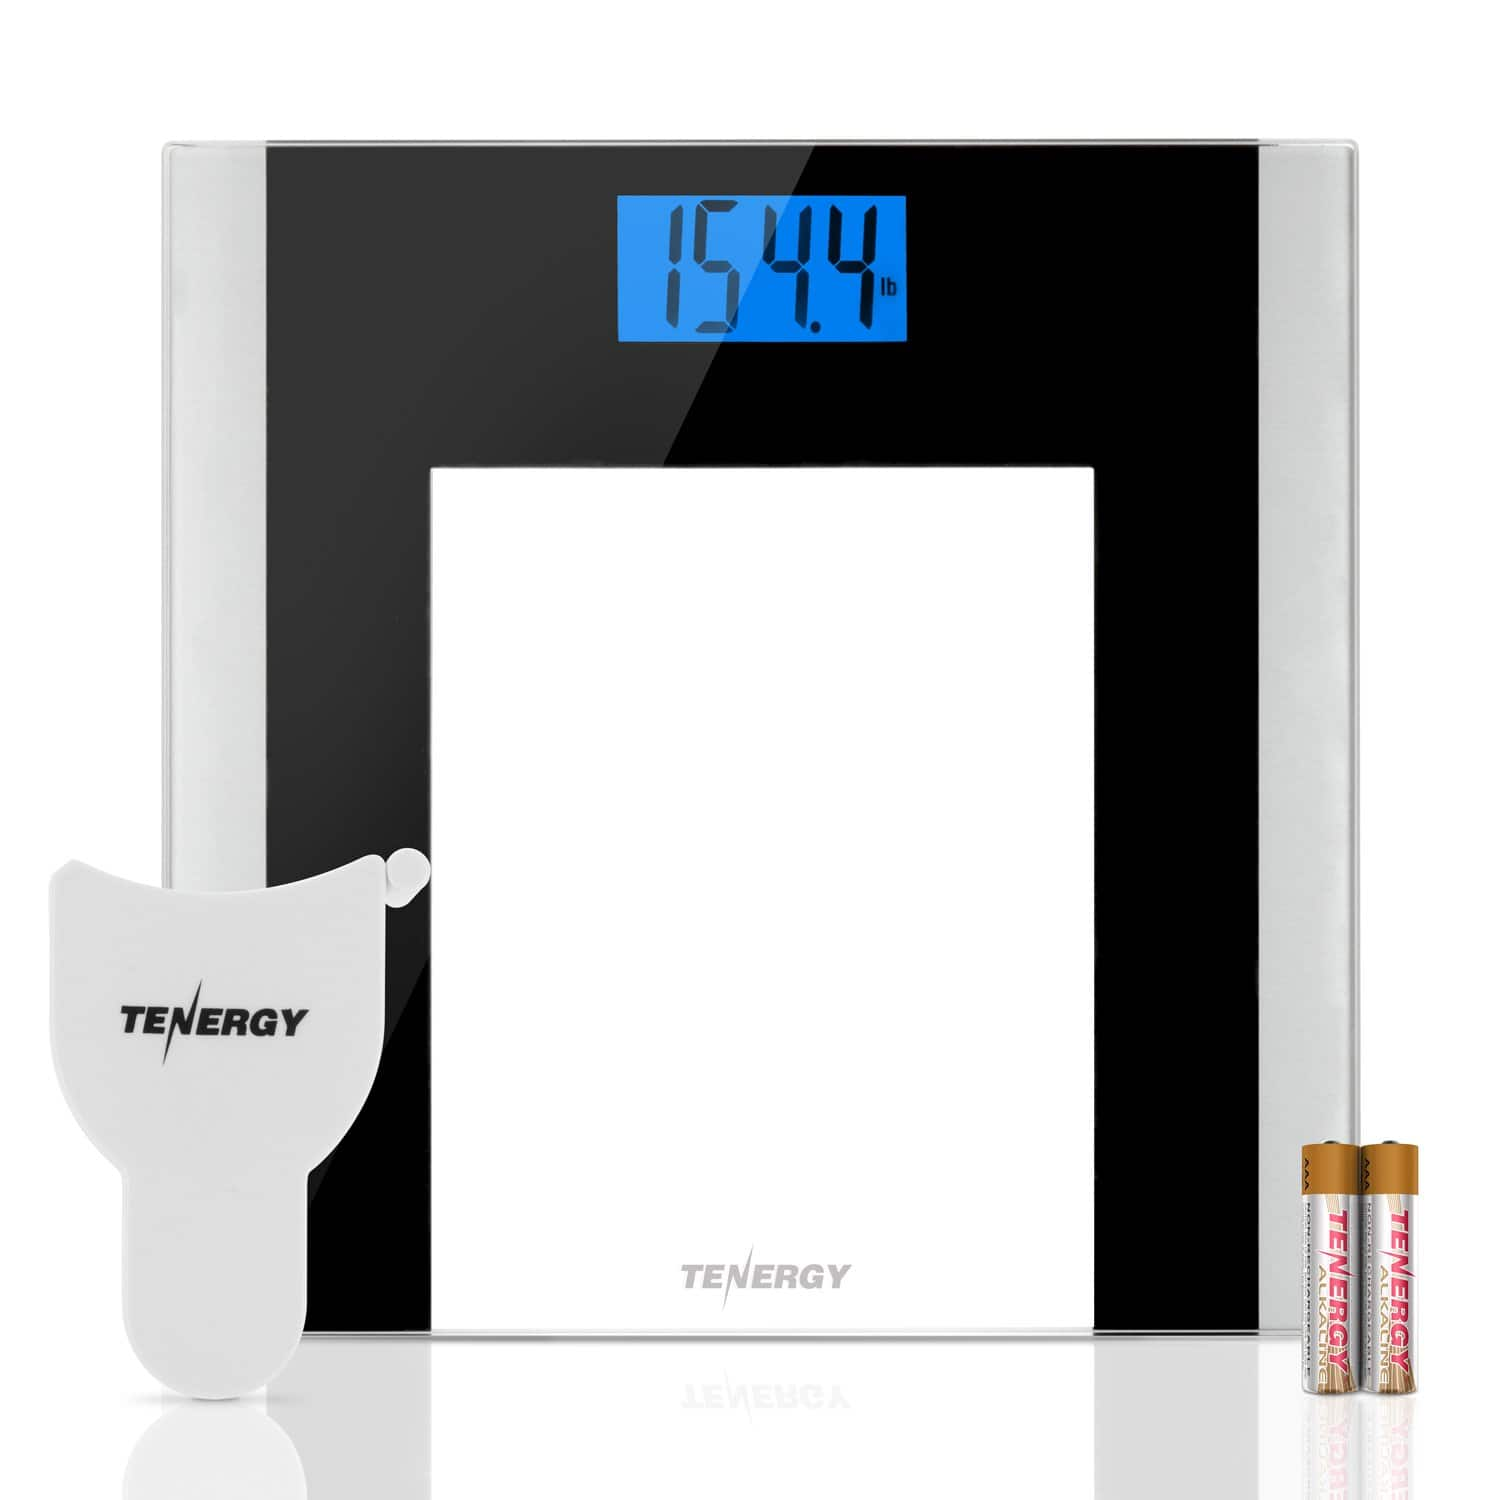 Tenergy Body Weight Scale with Step-On Technology - $12.50 + FSSS